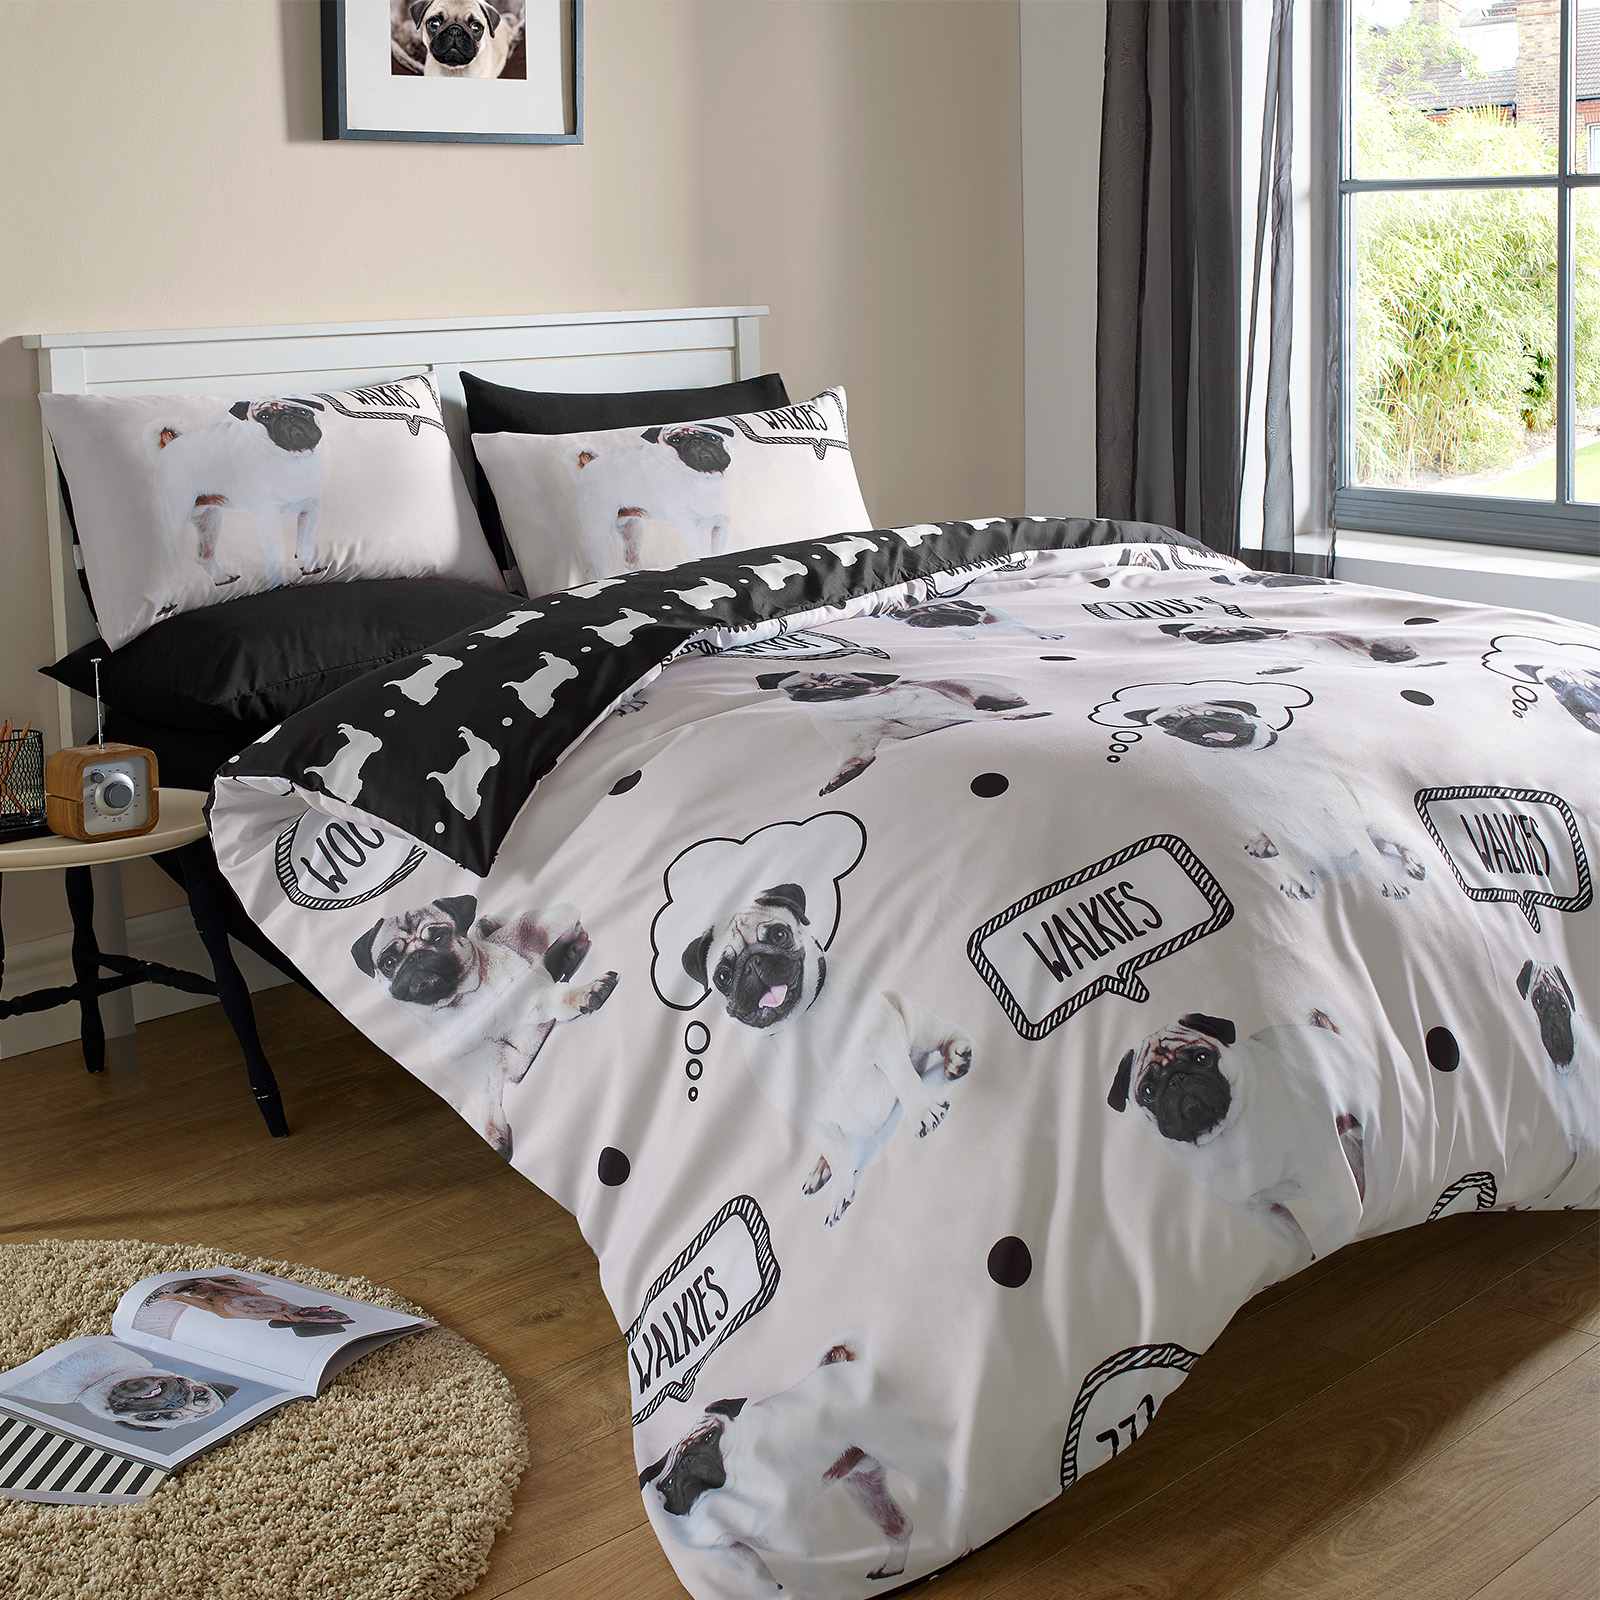 Attractive Dreamscene Pug Duvet Cover With Pillow Case Bedding Set OR Dog Bed Blanket  Throw